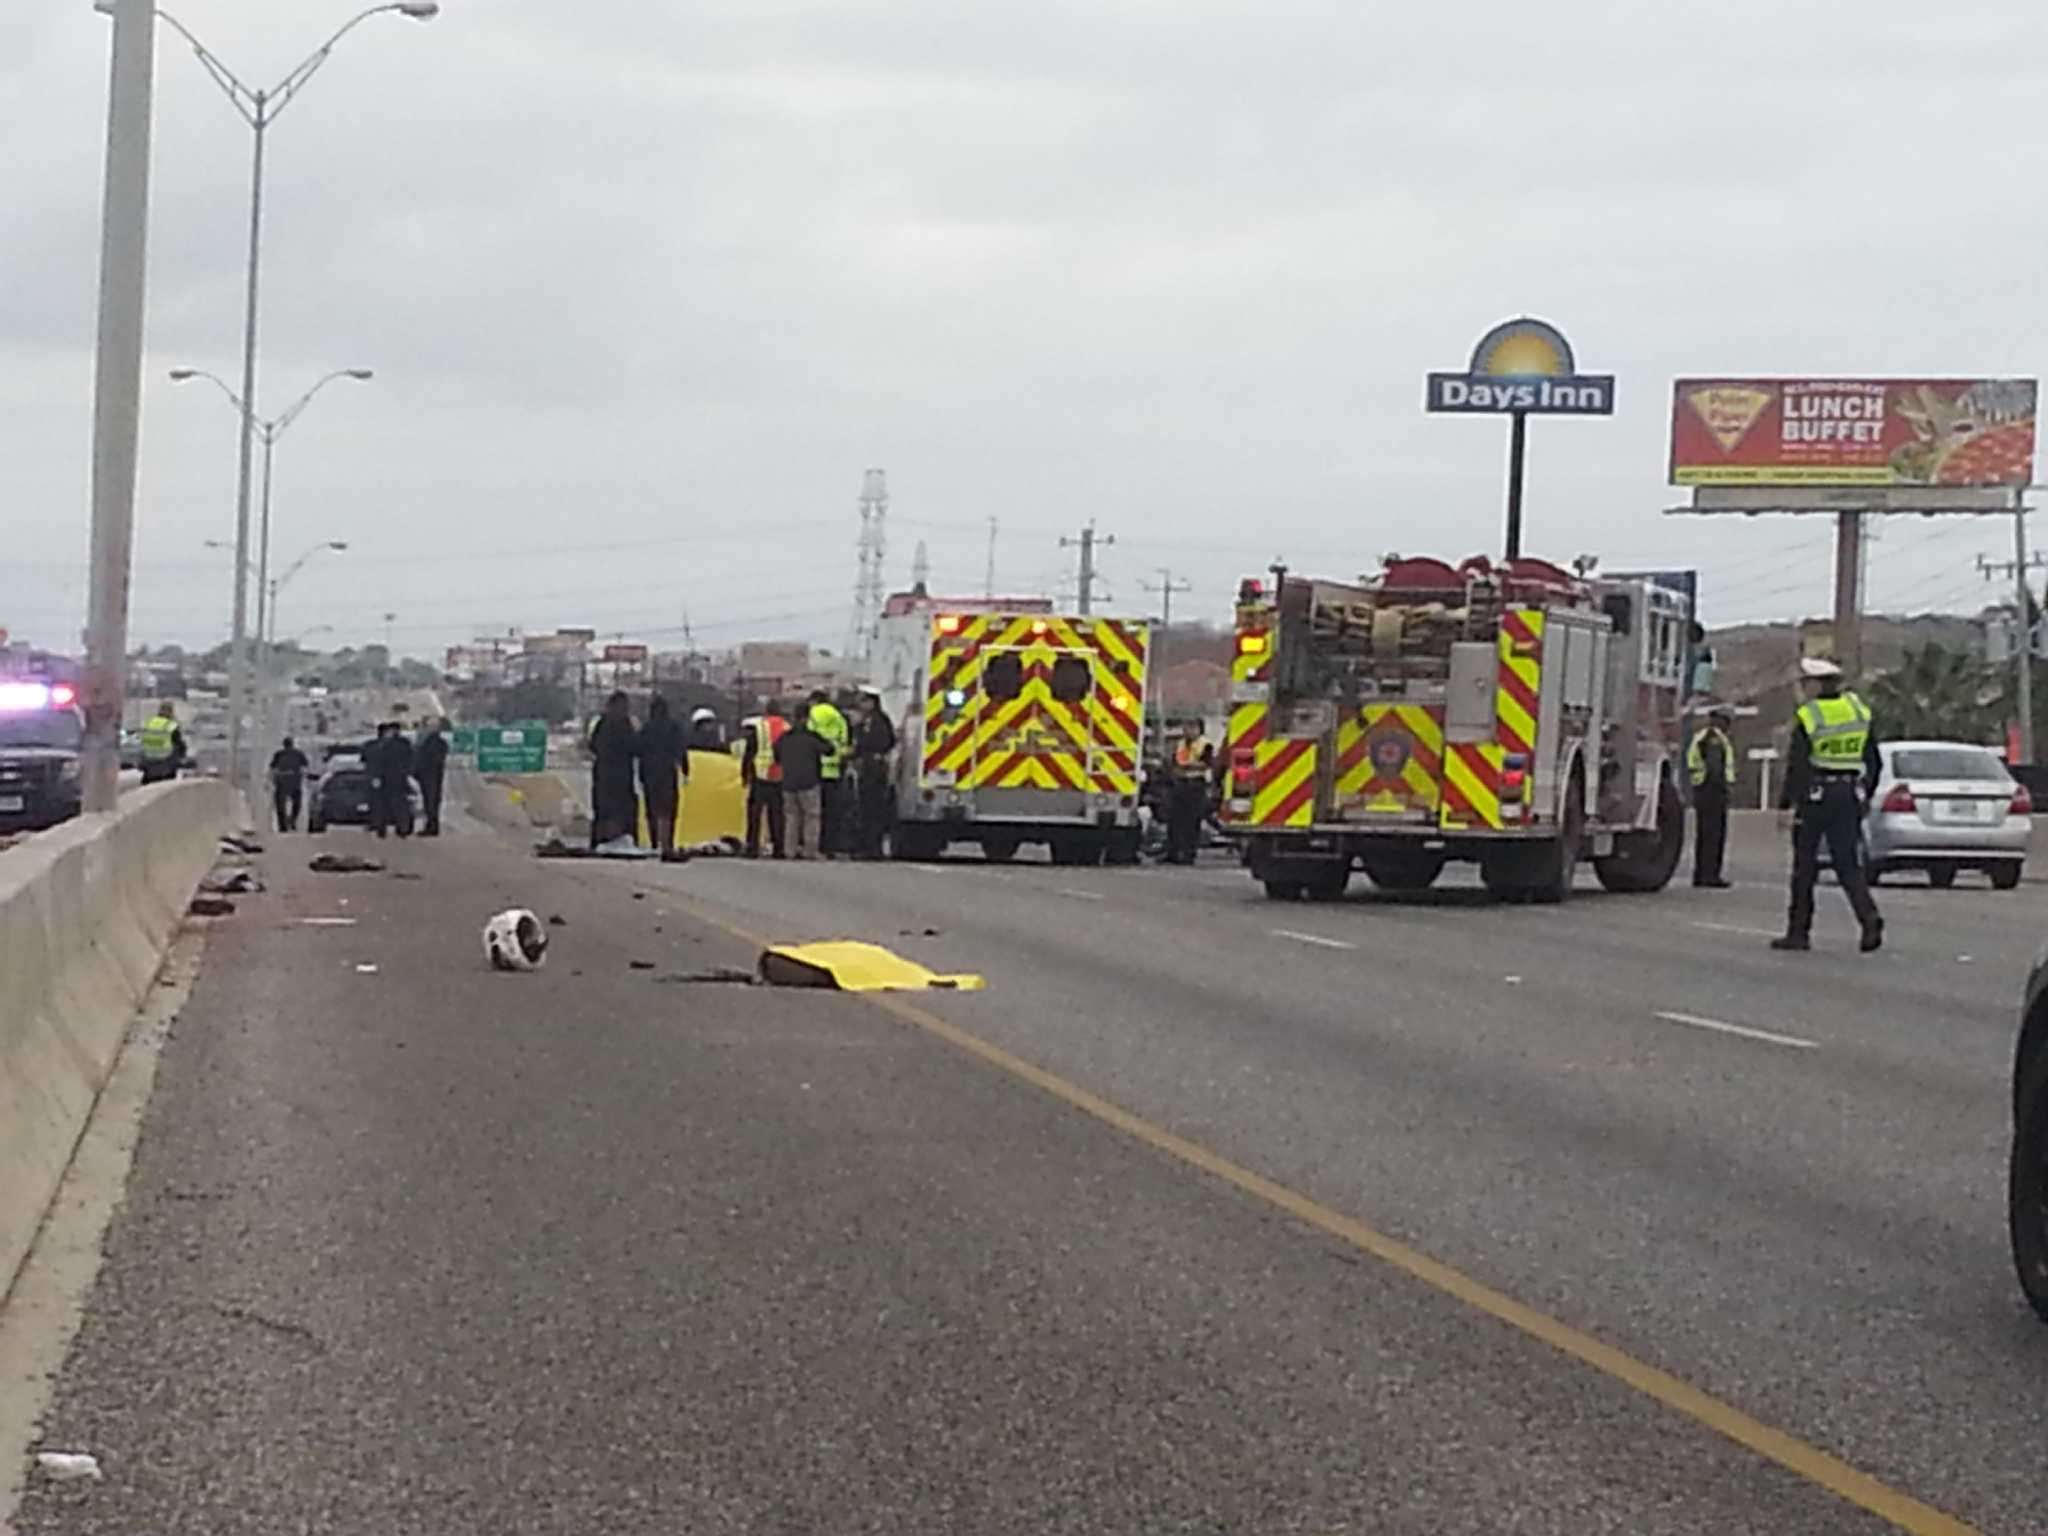 Man Killed In Motorcycle Accident San Antonio Express News